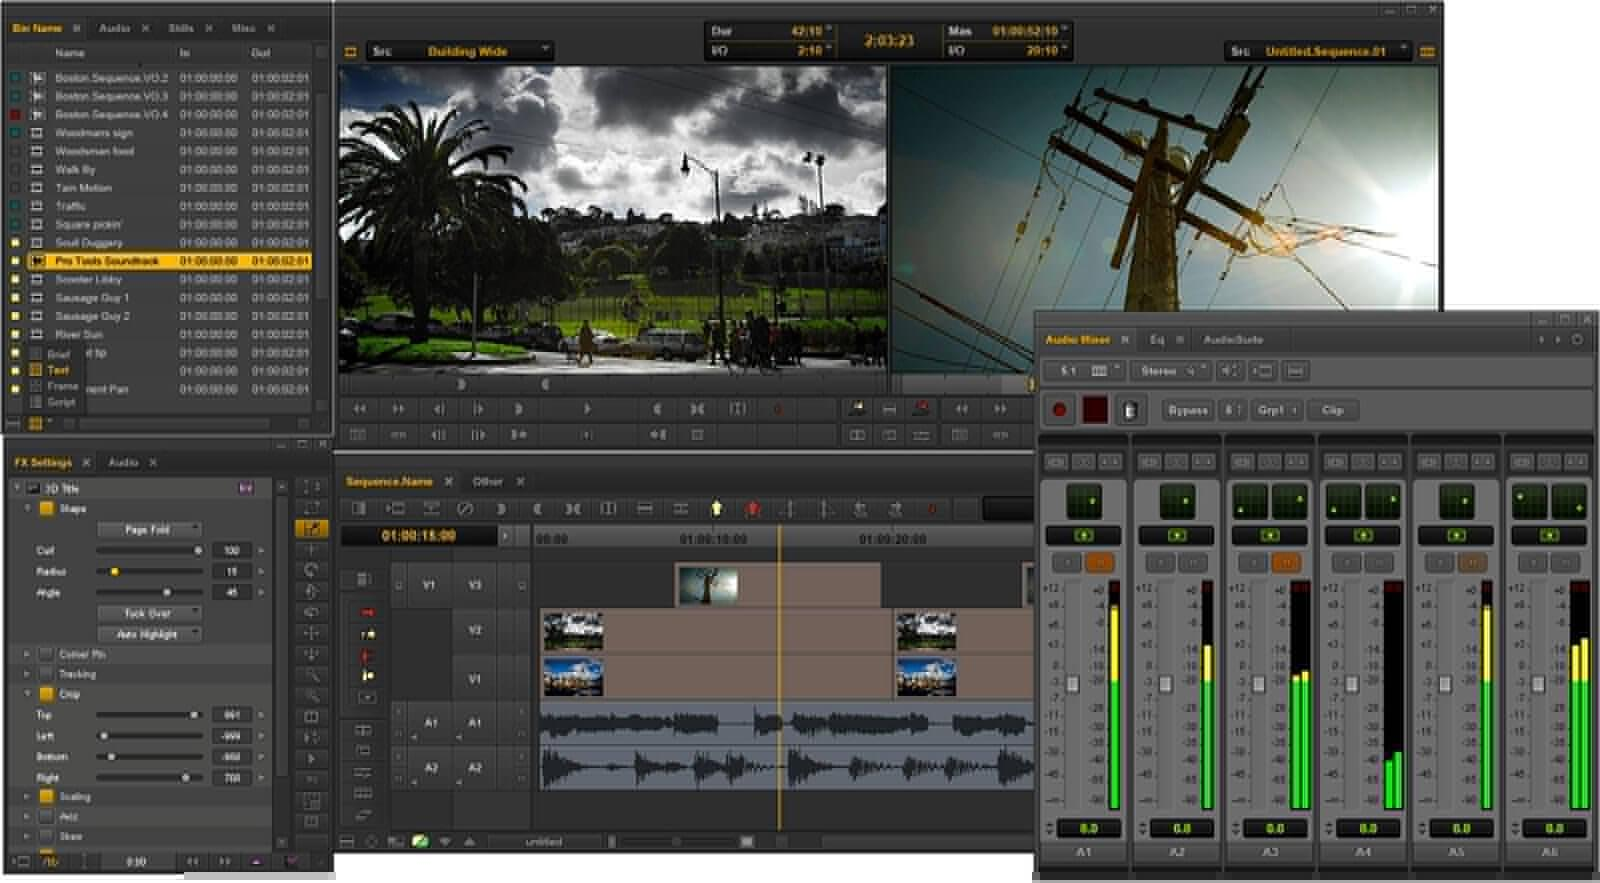 avid-media-composer-audio-mixer-for-video